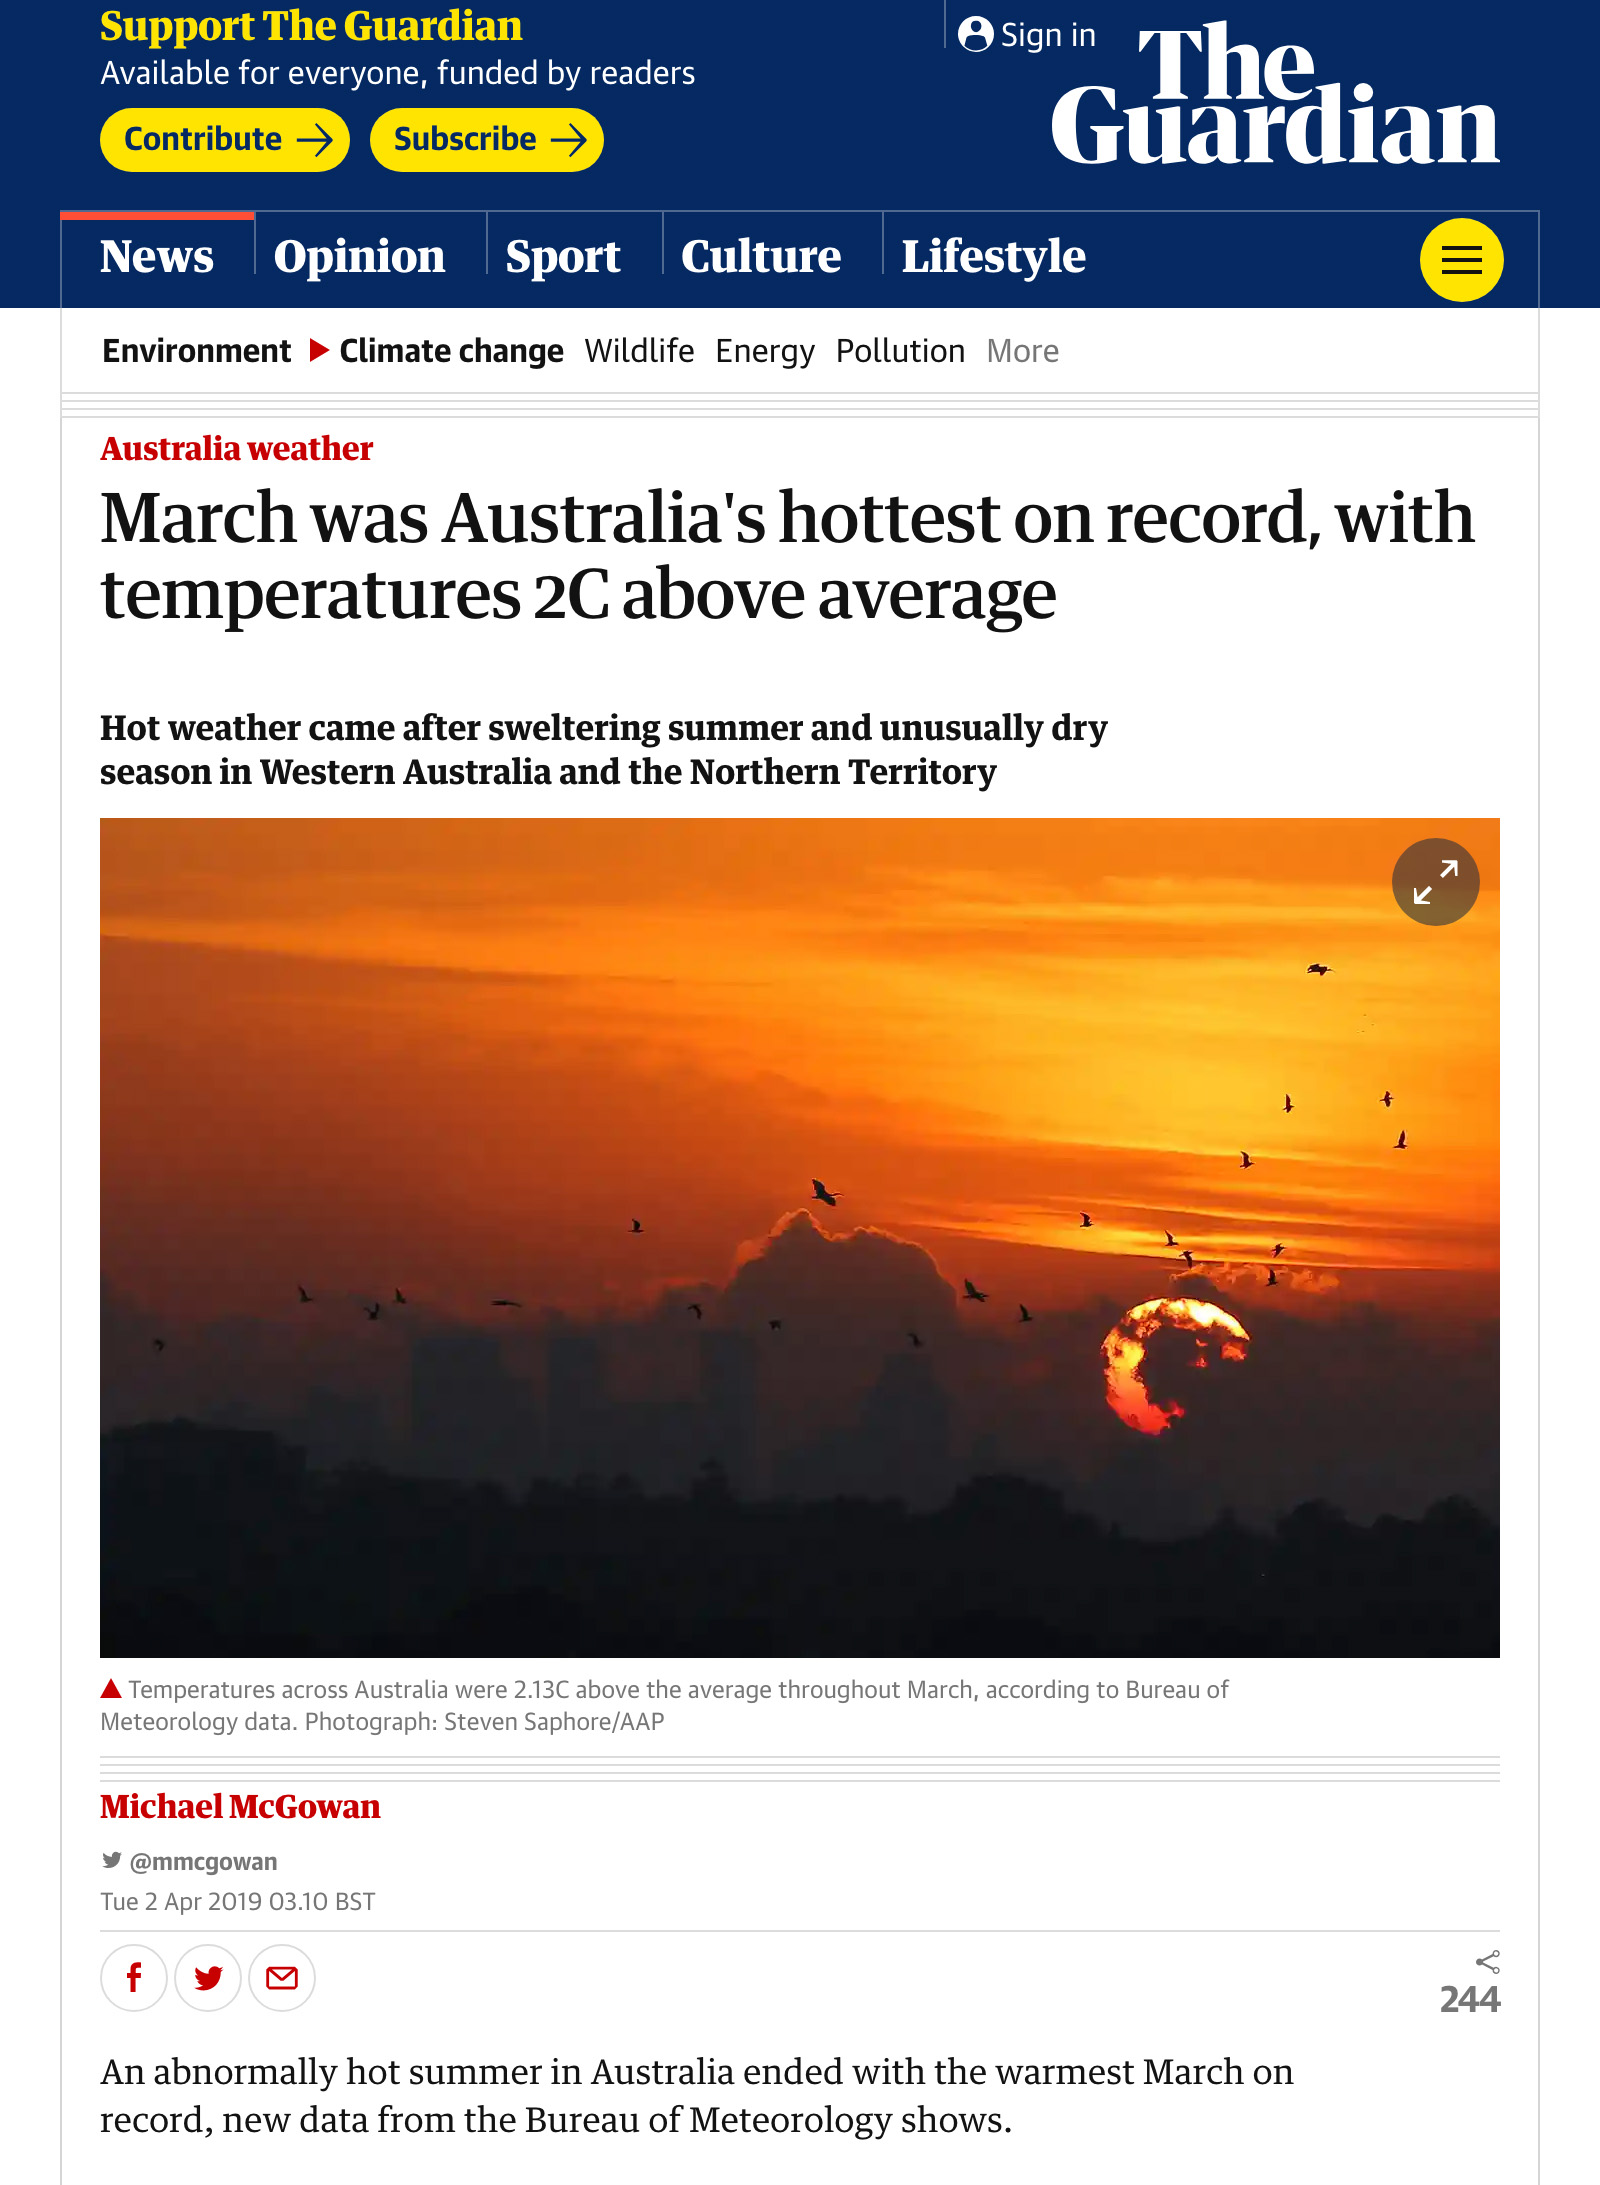 2019-04-02 www.theguardian.com_australia-news_2019_apr_02_march-was-australias-hottest-on-record-with-temperatures-2c-above-average (1) copy.jpg